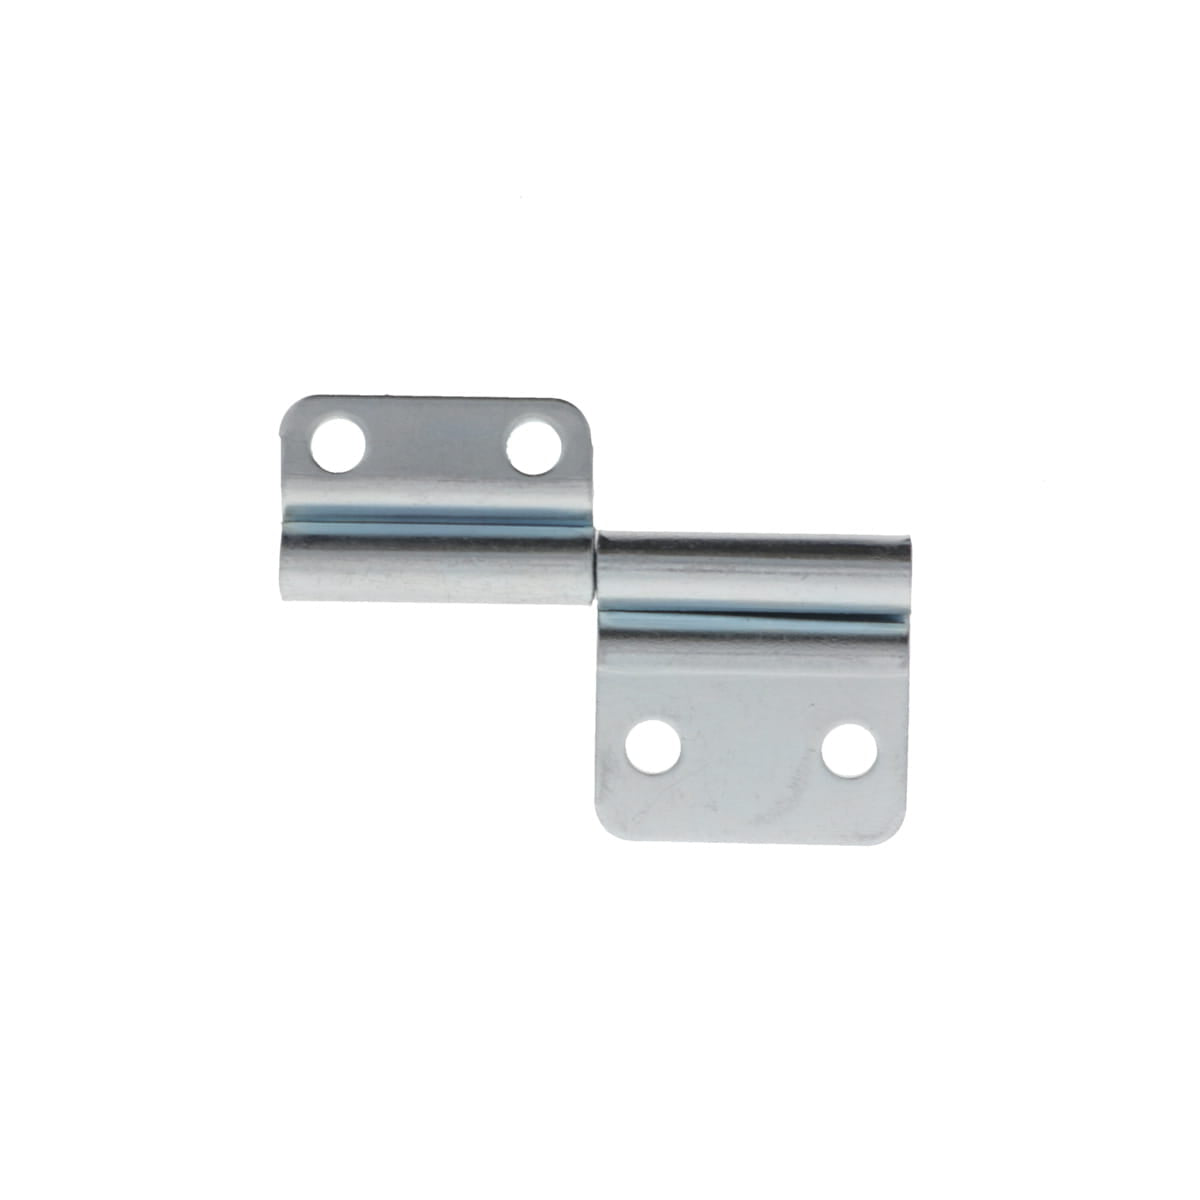 Small Slip Hinge - Right Sided